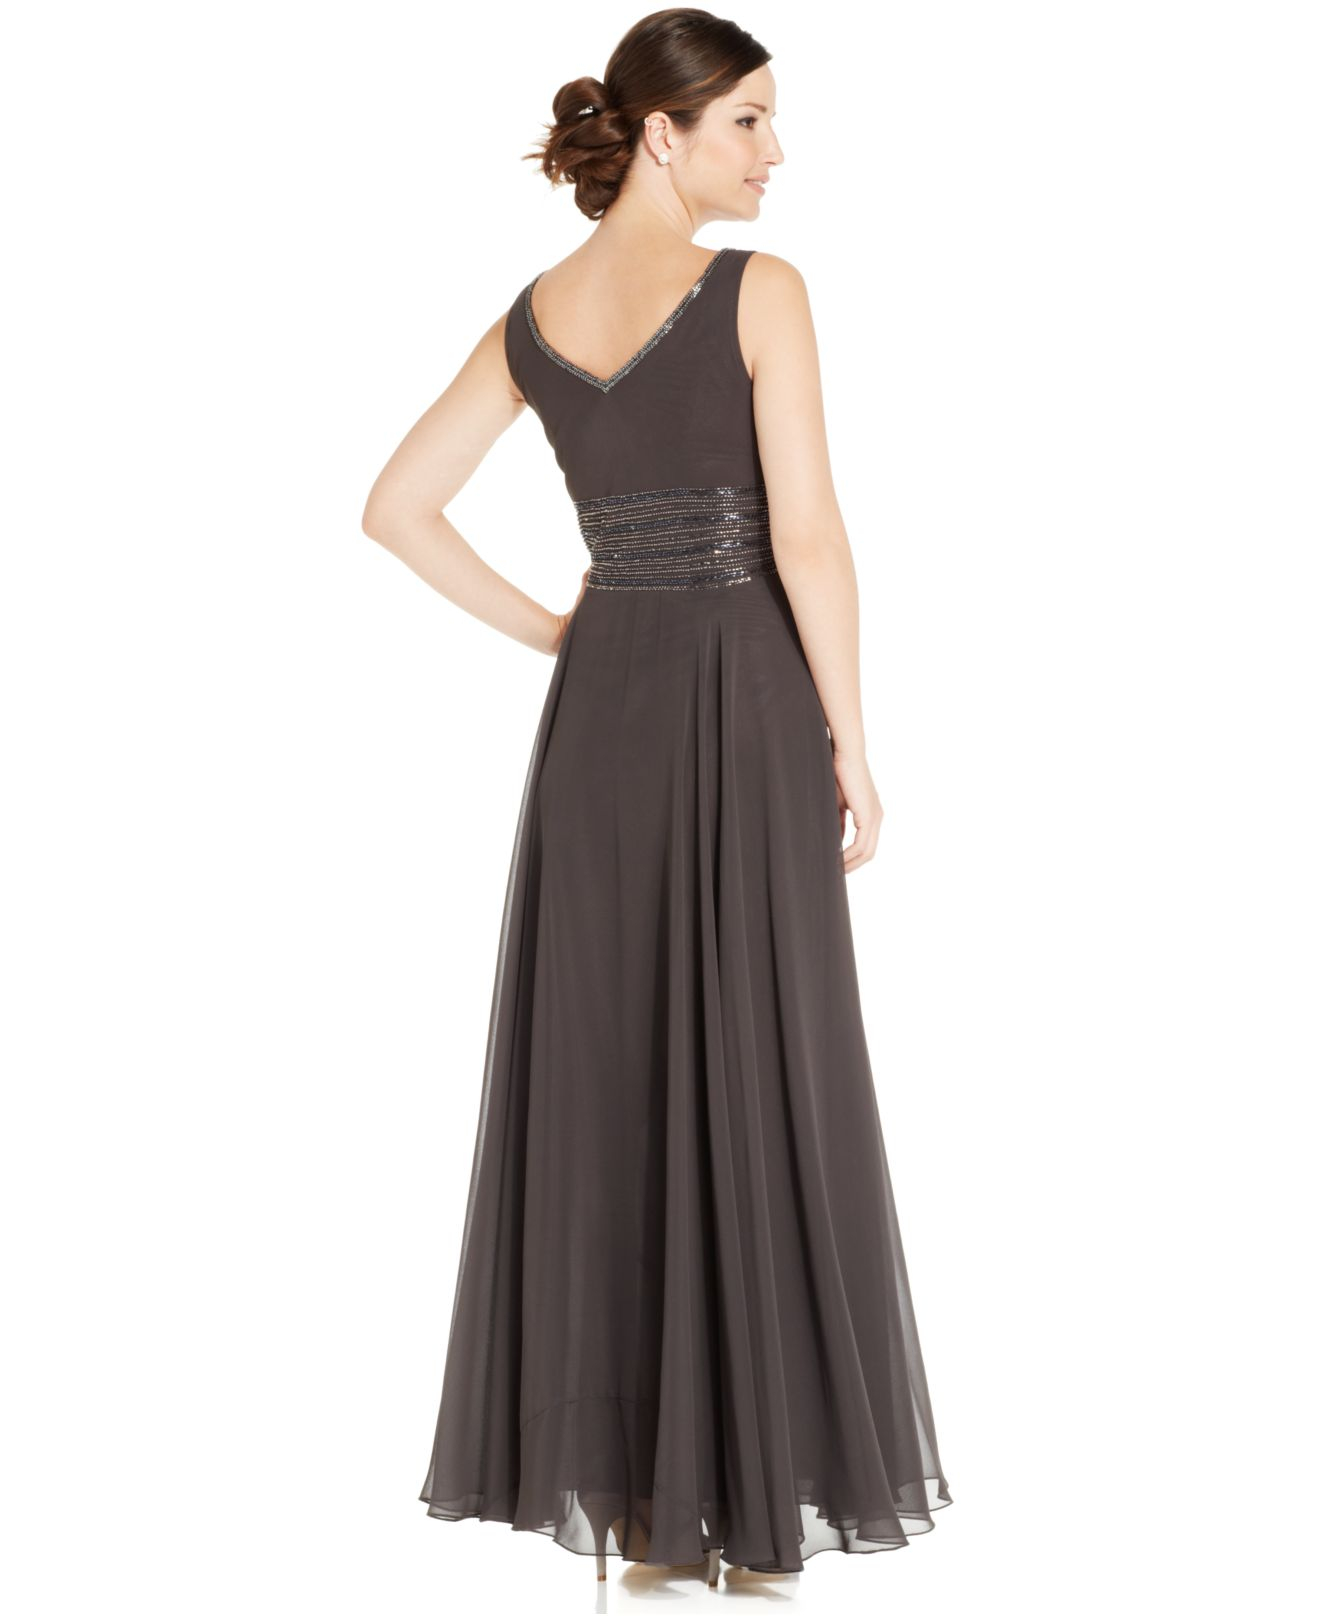 Lyst - J Kara Sleeveless Beaded Chiffon Gown And Jacket in Brown